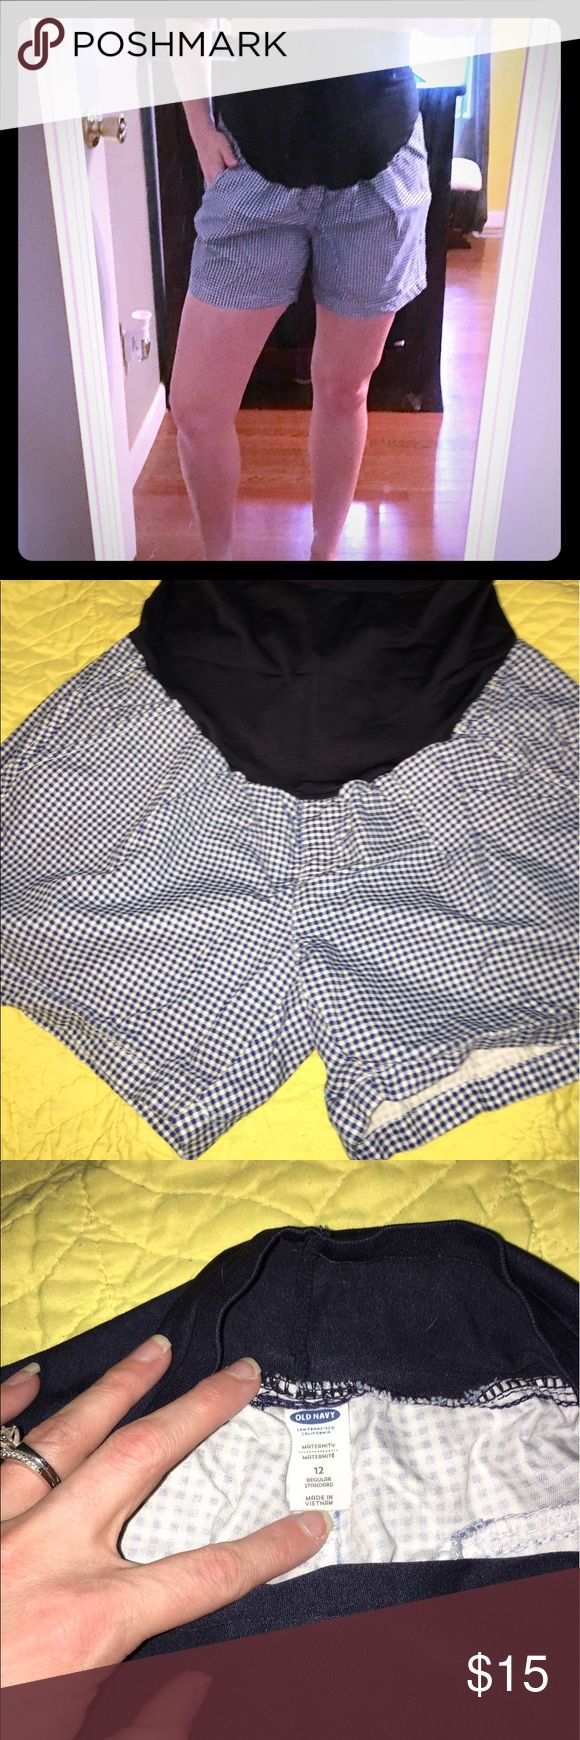 Old Navy Maternity Shorts Old Navy blue and white gingham maternity shorts! These are perfect when you still want to look cute but be comfortable and cool while you are pregnant. Only worn twice while I was pregnant and always got compliments. They are perfect for the upcoming summer season! Size 12. Old Navy Shorts